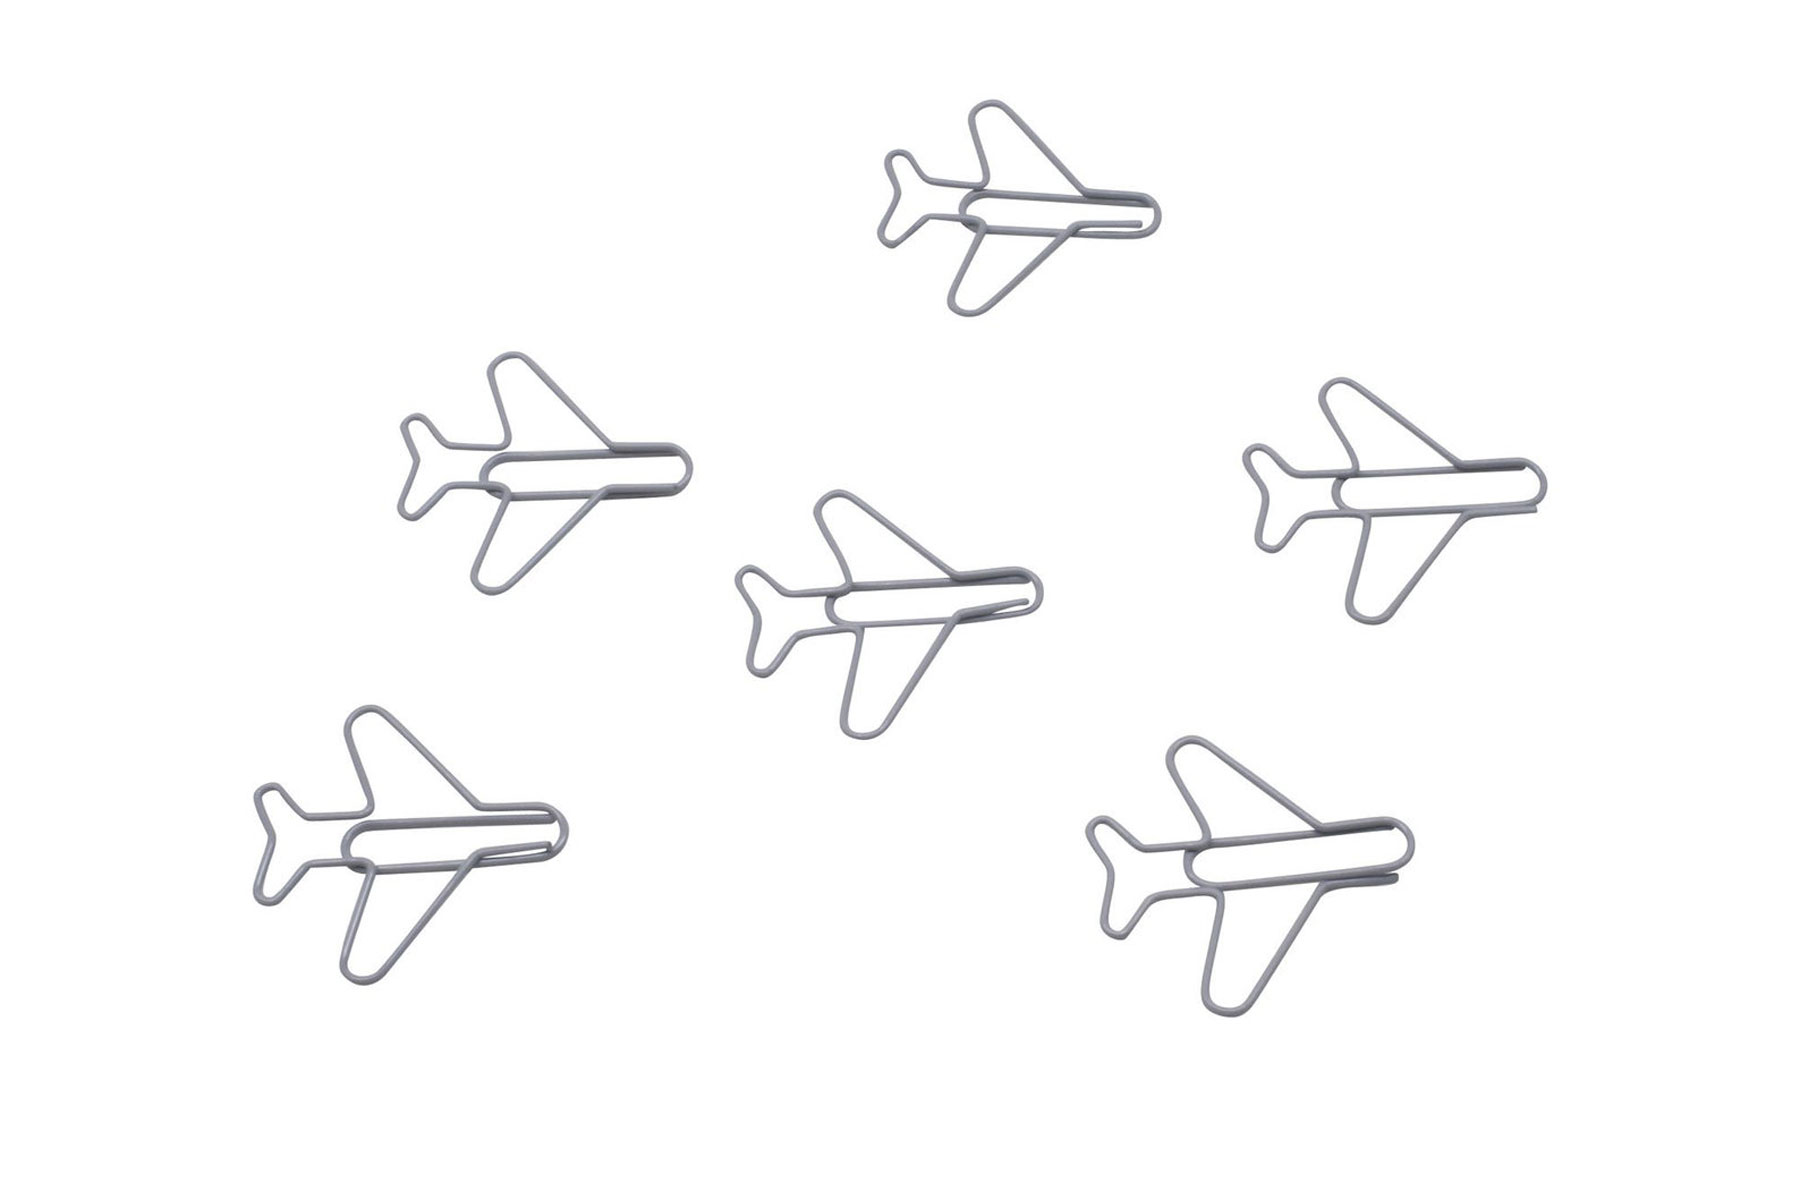 Airplane-shaped paper clips